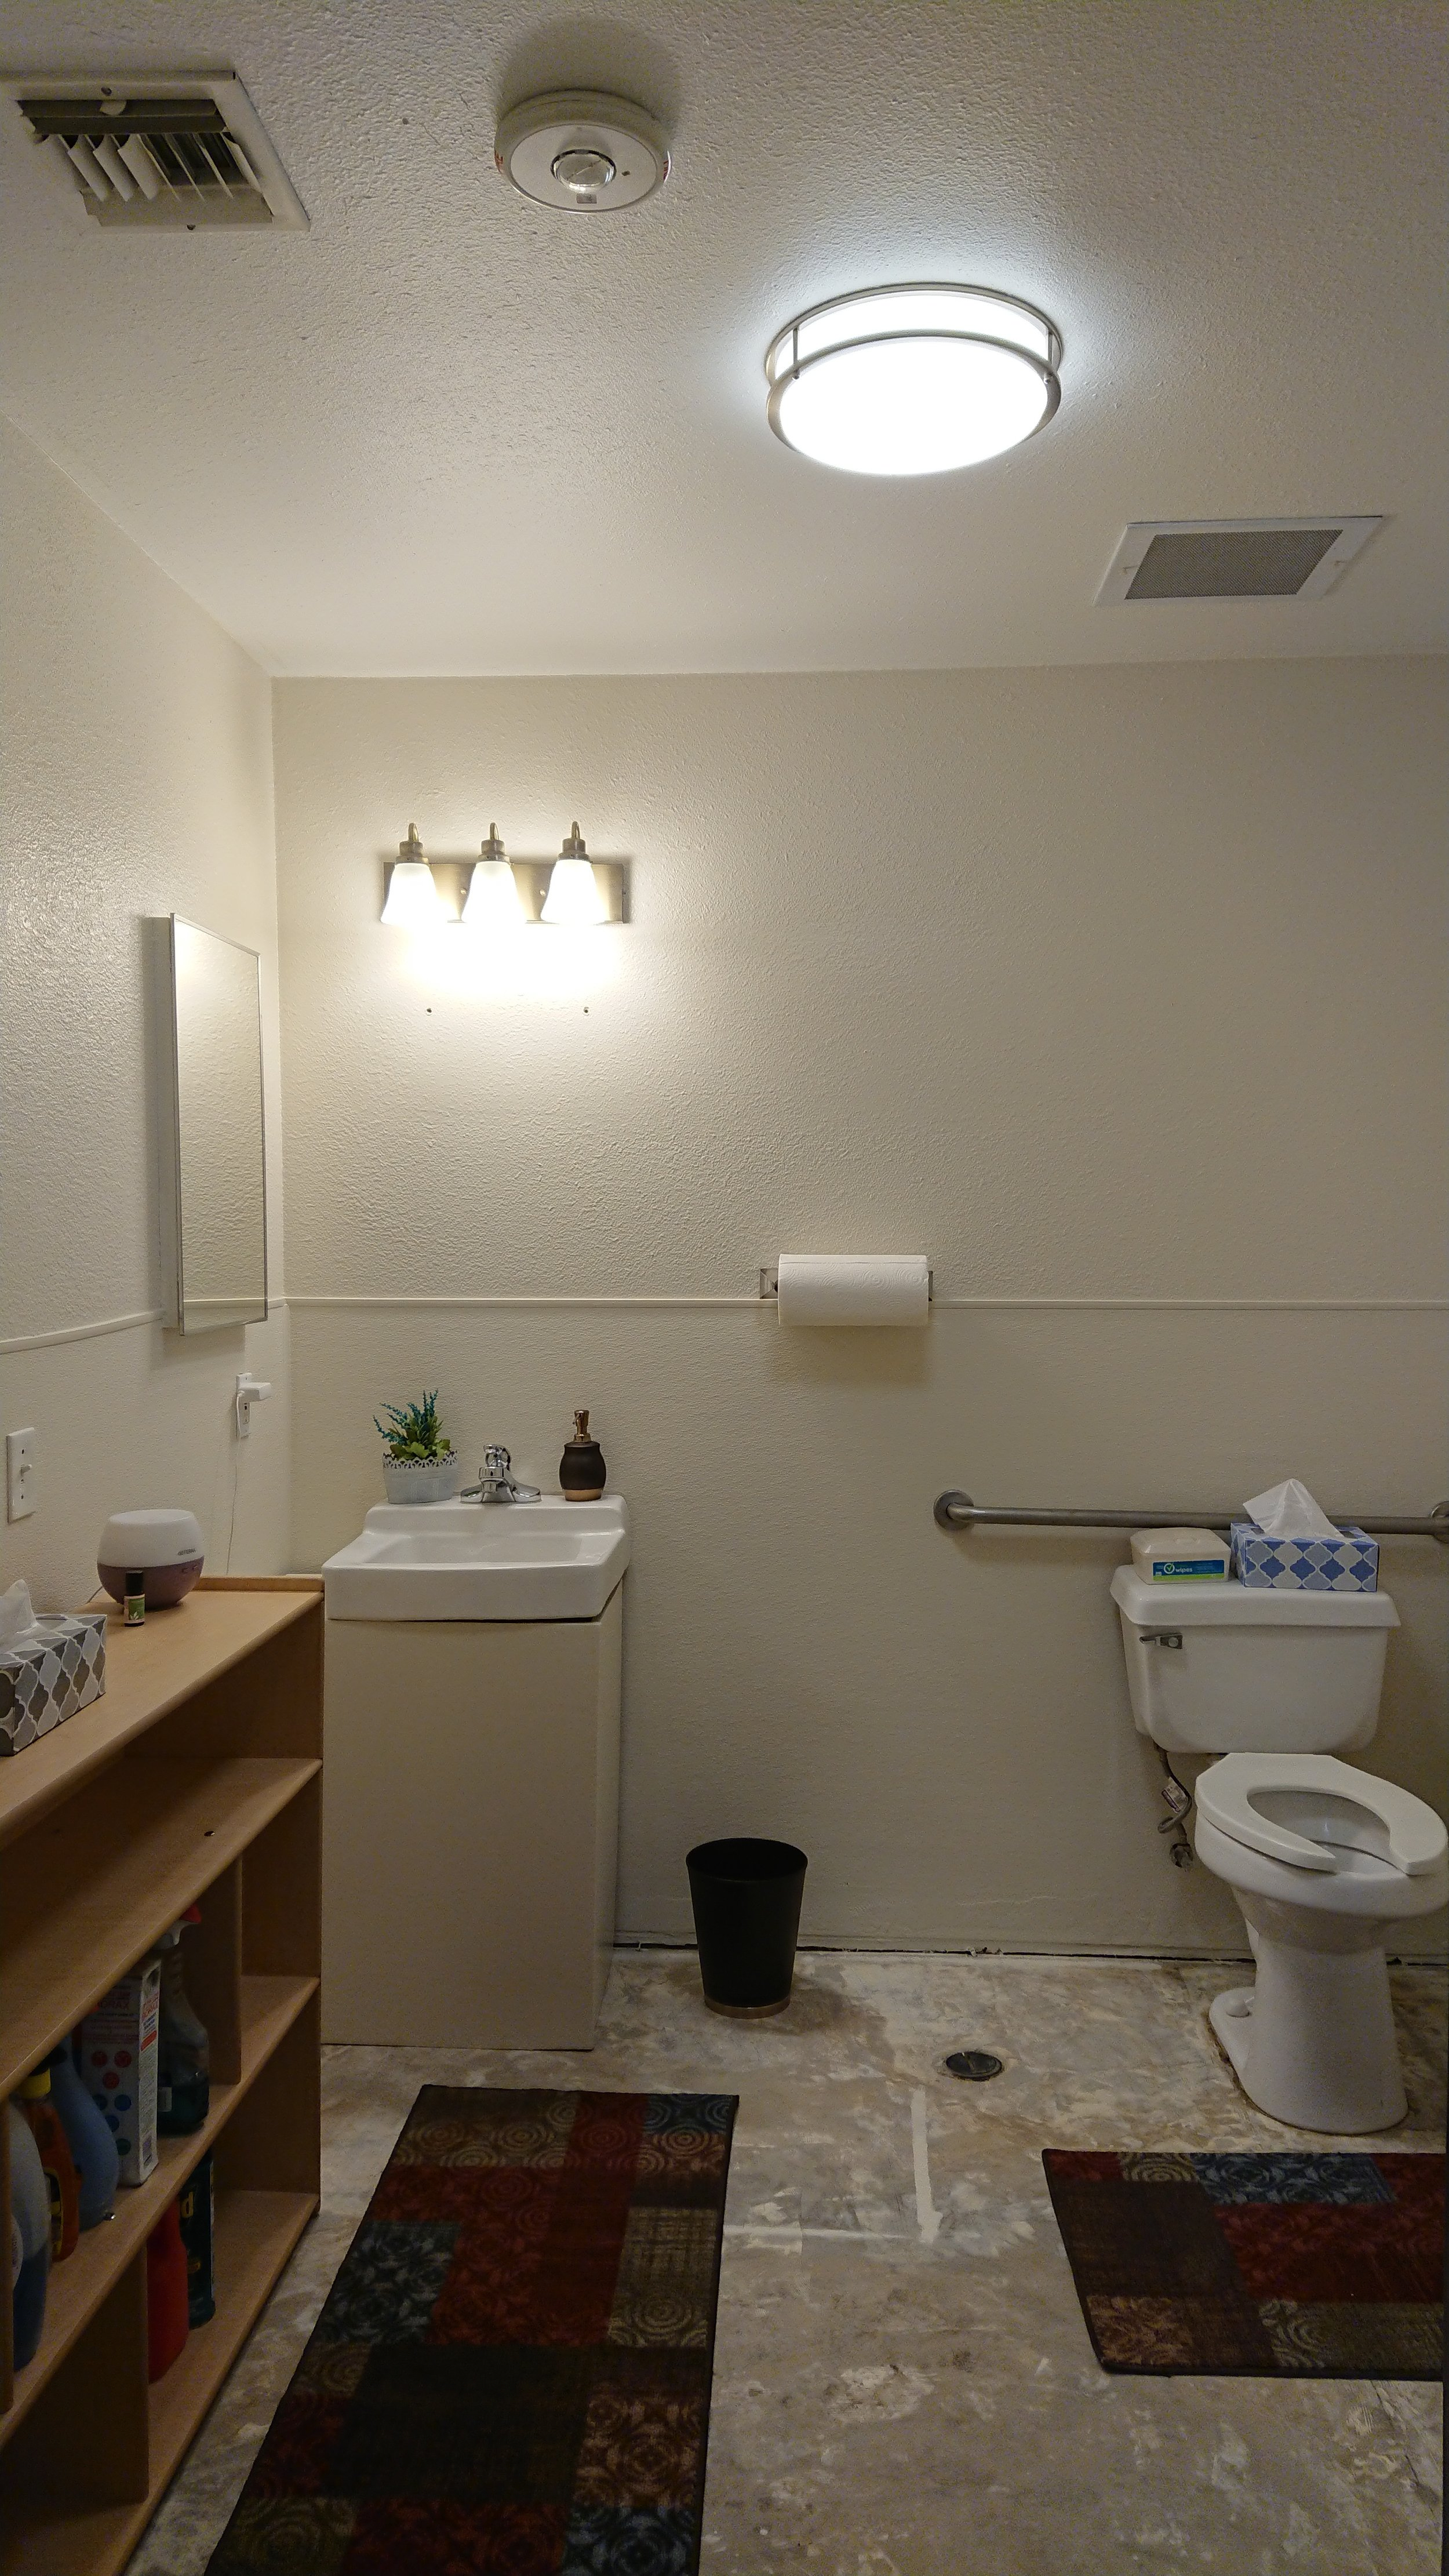 Our staff bathroom got a makeover: new paint, two new light fixtures, and the vanity got painted to match the walls